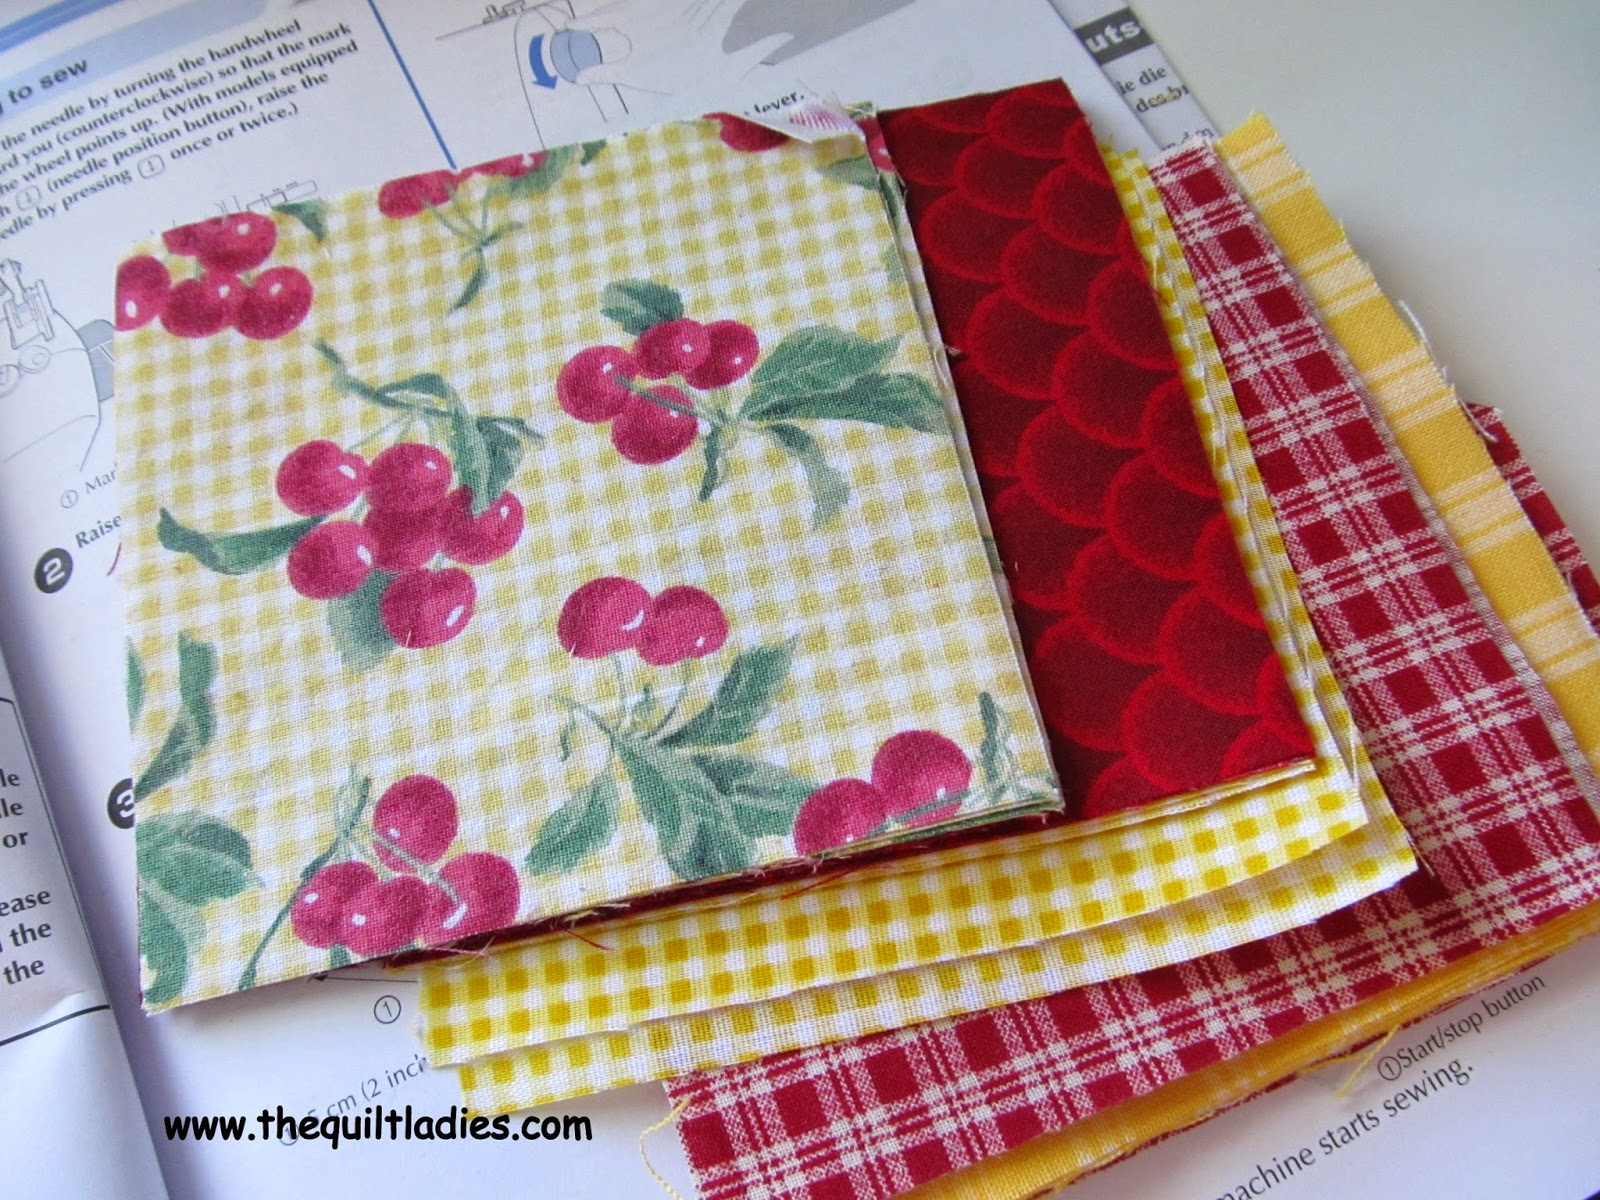 quilt fabric in plaids and solids